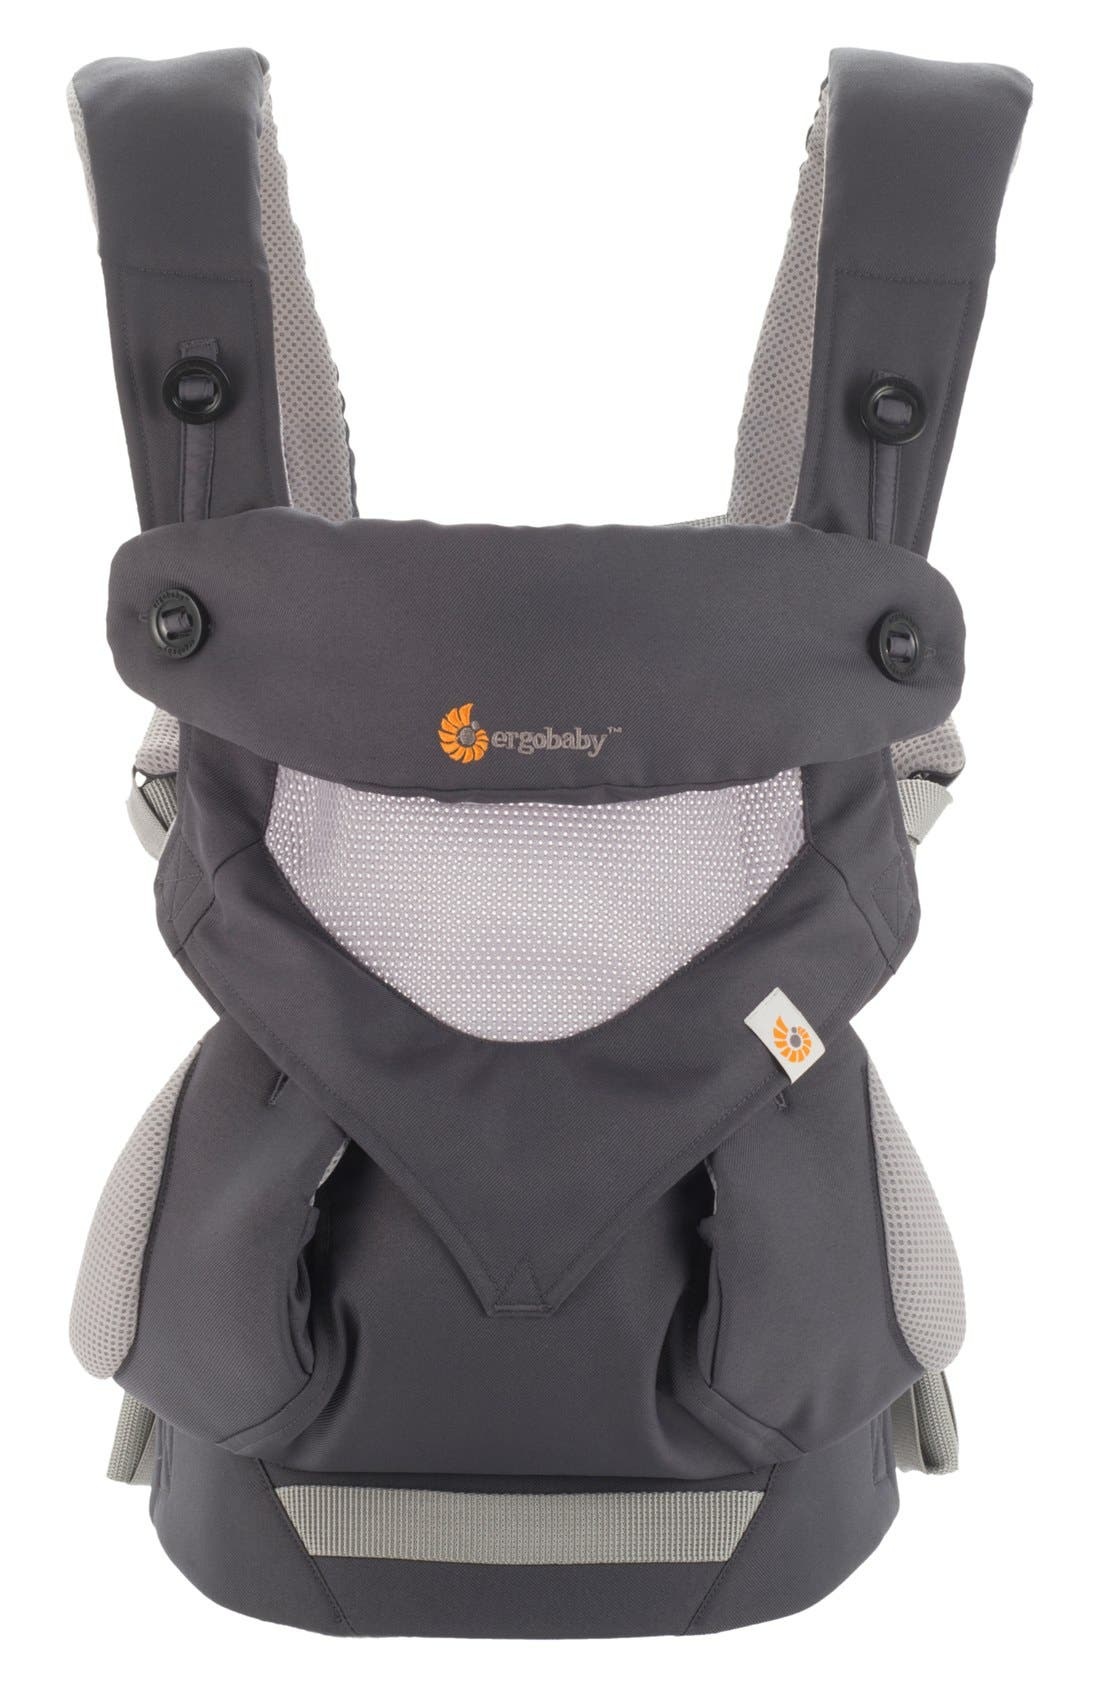 Alternate Image 1 Selected - ERGObaby 'Four Position 360 - Cool Air' Baby Carrier